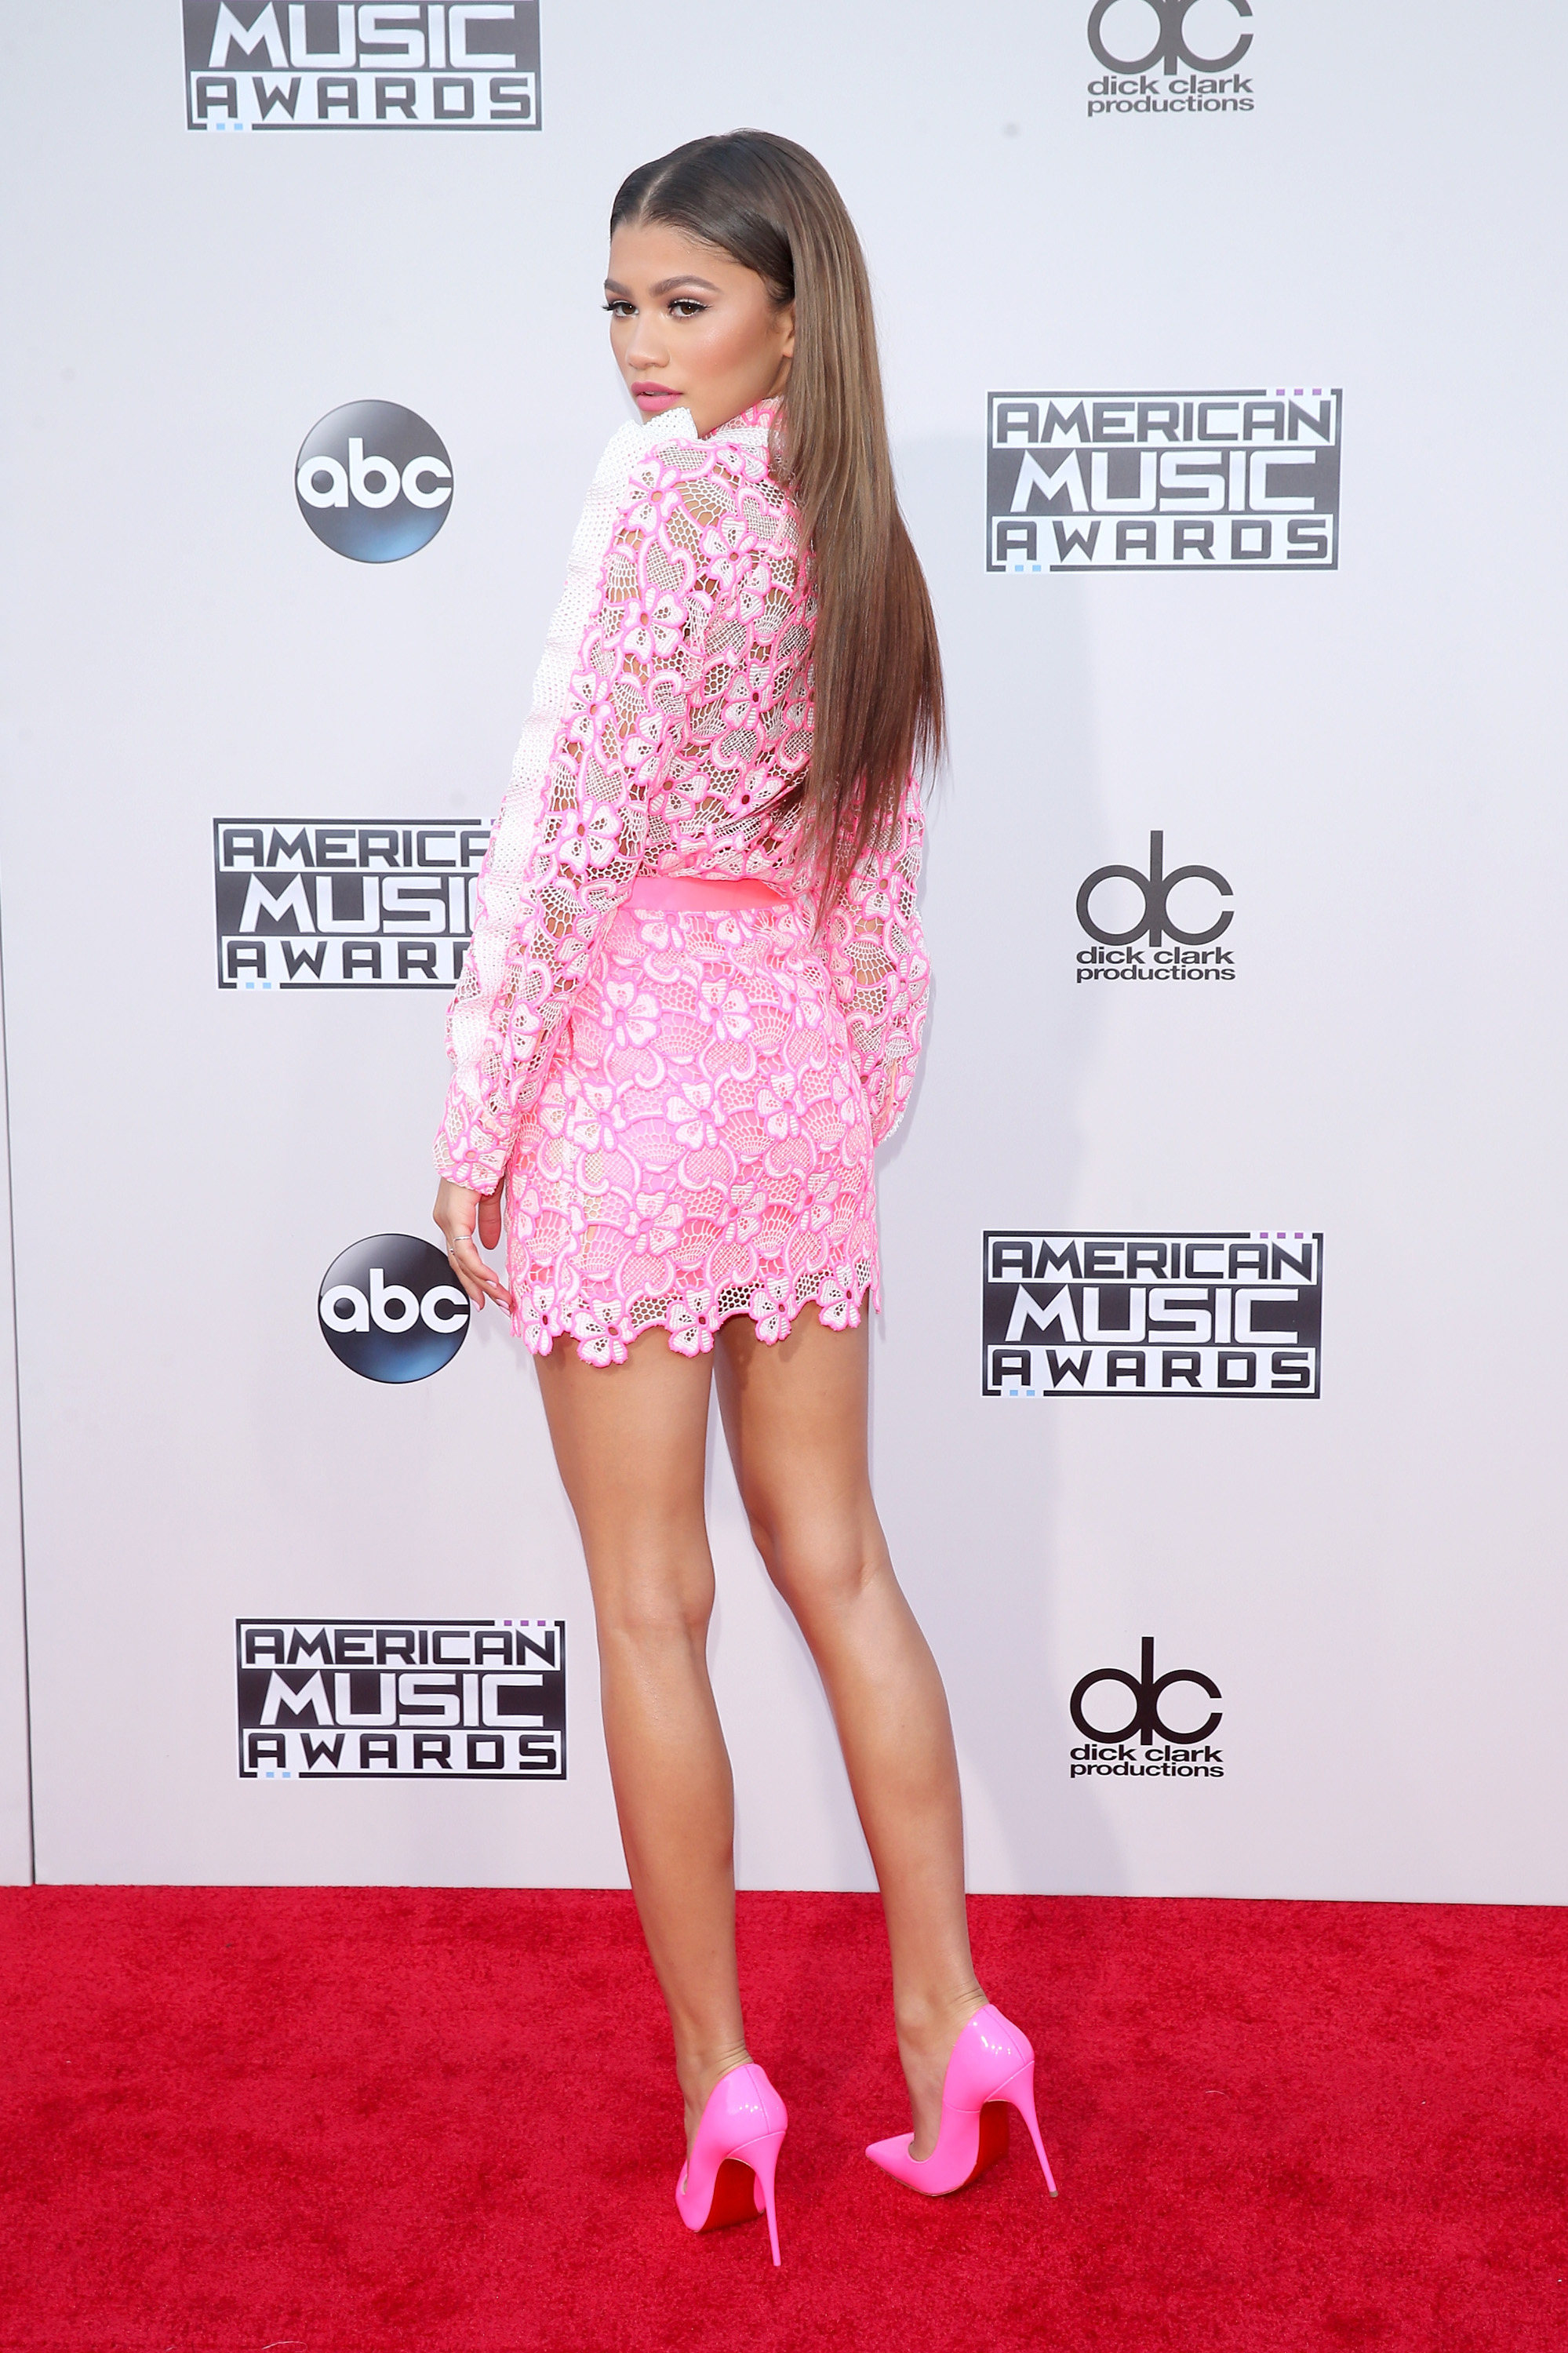 LOS ANGELES, CA - NOVEMBER 22: Singer Zendaya attends the 2015 American Music Awards at Microsoft Theater on November 22, 2015 in Los Angeles, California. (Photo by Mark Davis/Getty Images)